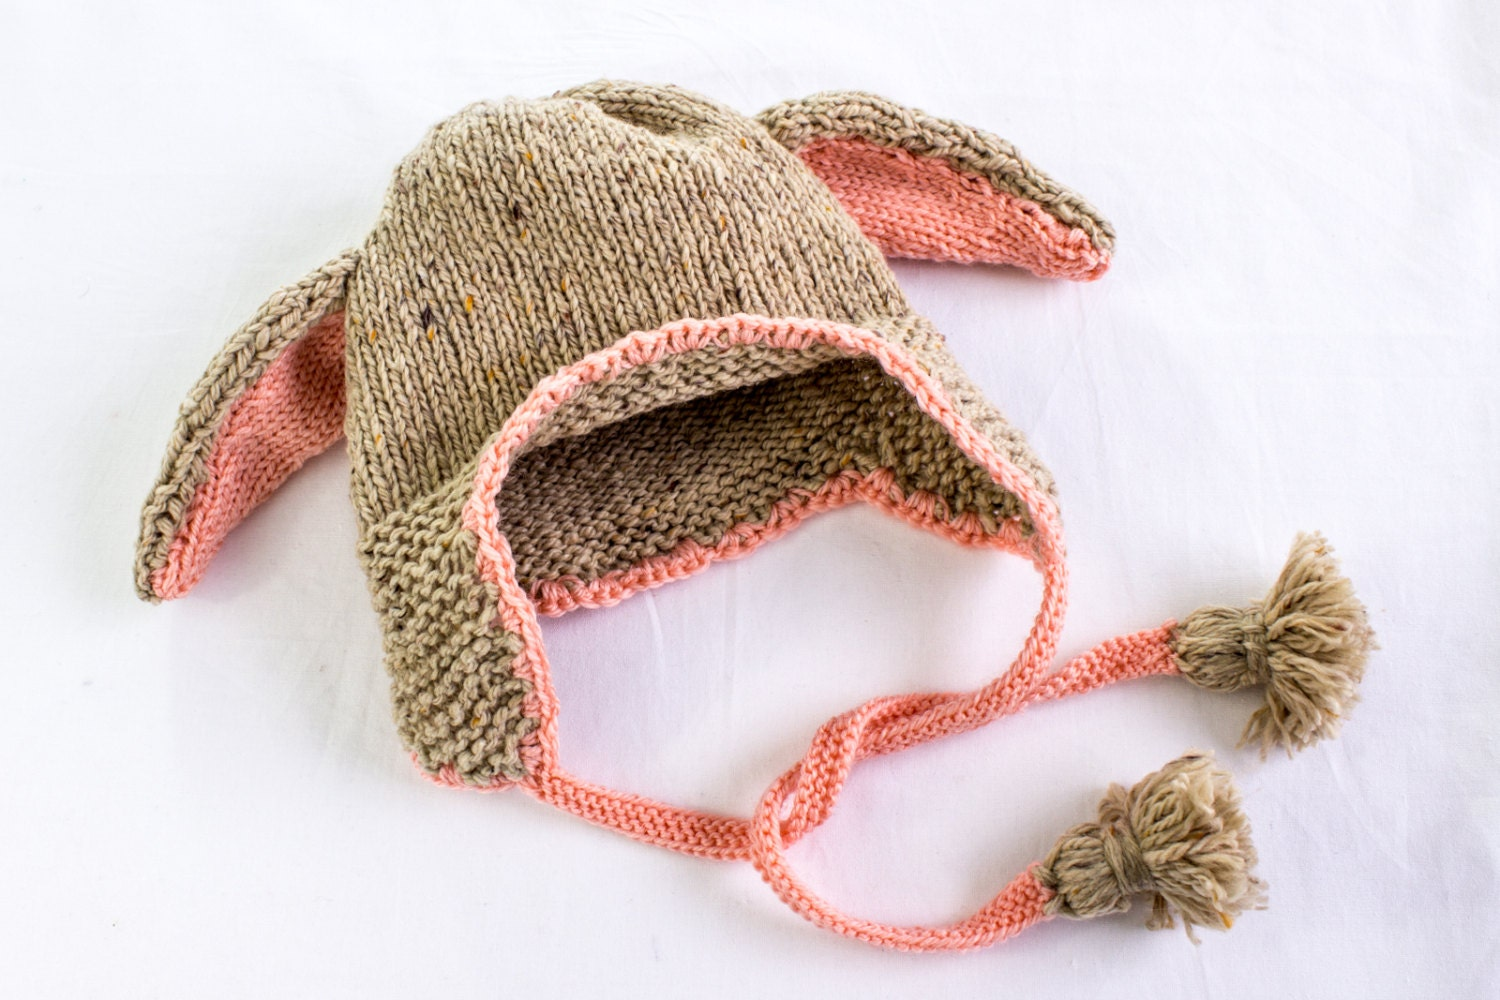 Bunny Ears Knitting Pattern : KNITTING PATTERN PDF Floppy Bunny Hat Knitting Pattern